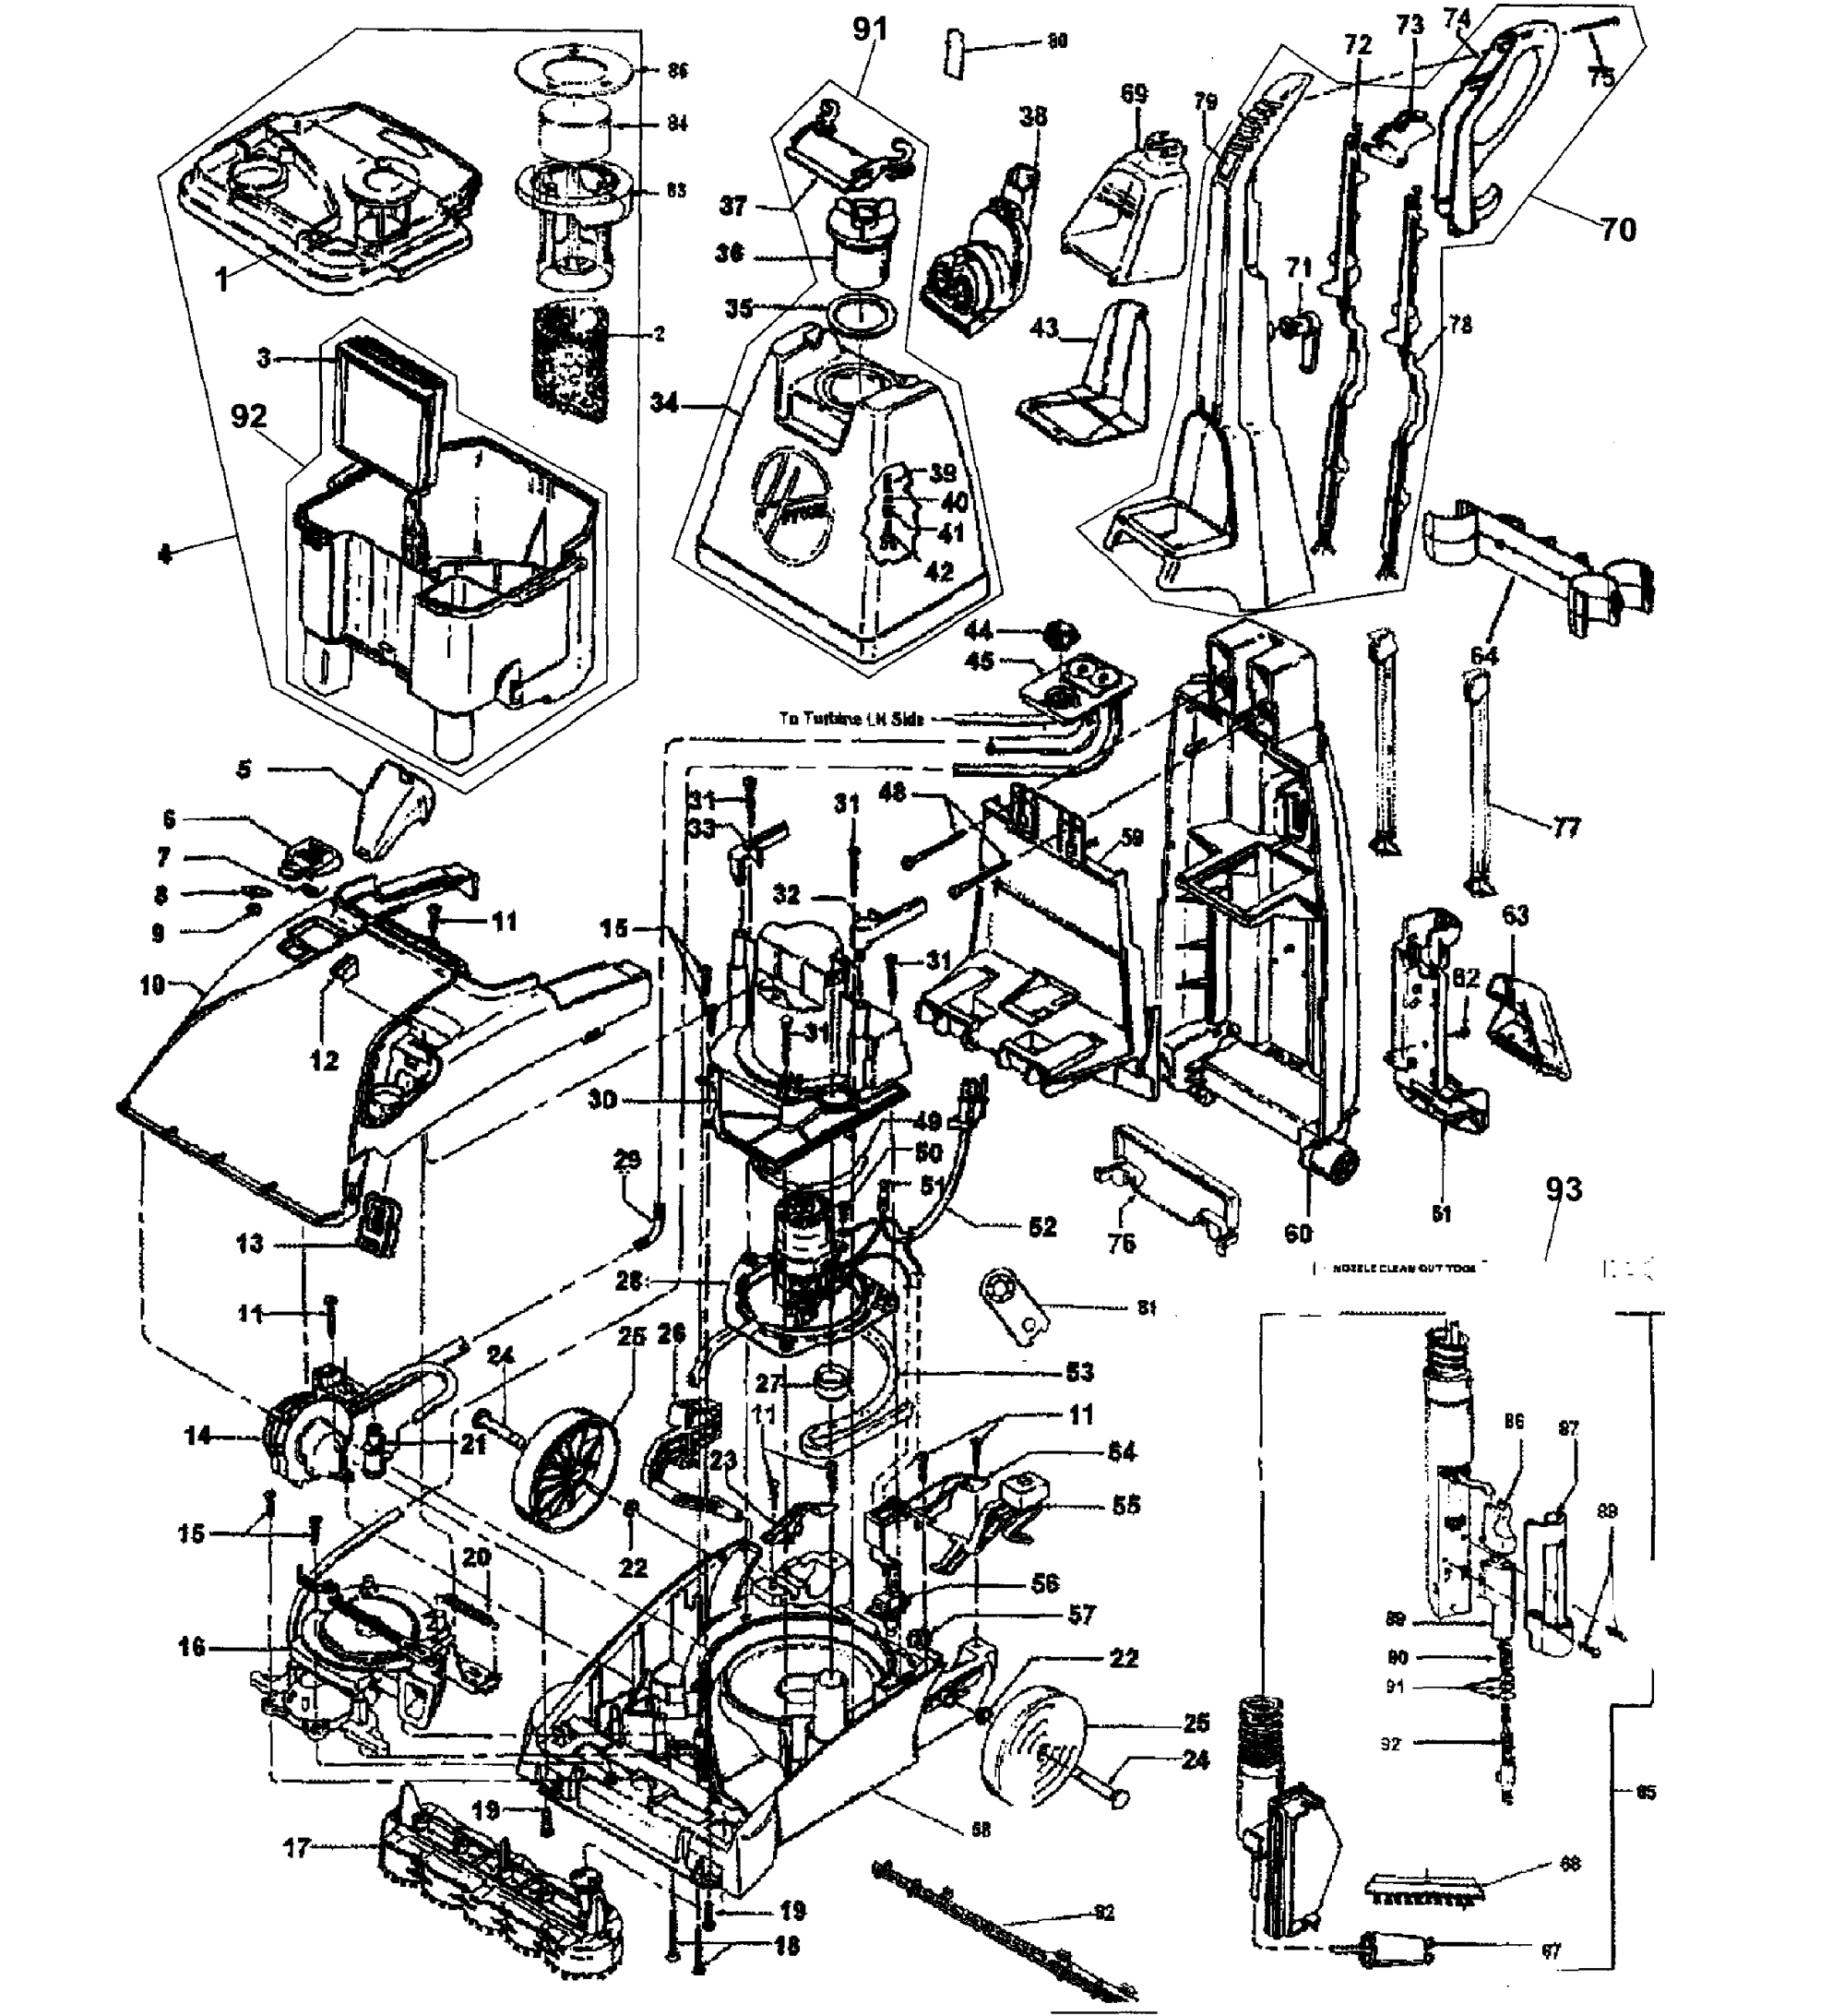 hight resolution of wiring diagram of hoover carpet cleaner wiring diagram third levelwiring diagram of hoover carpet cleaner wiring